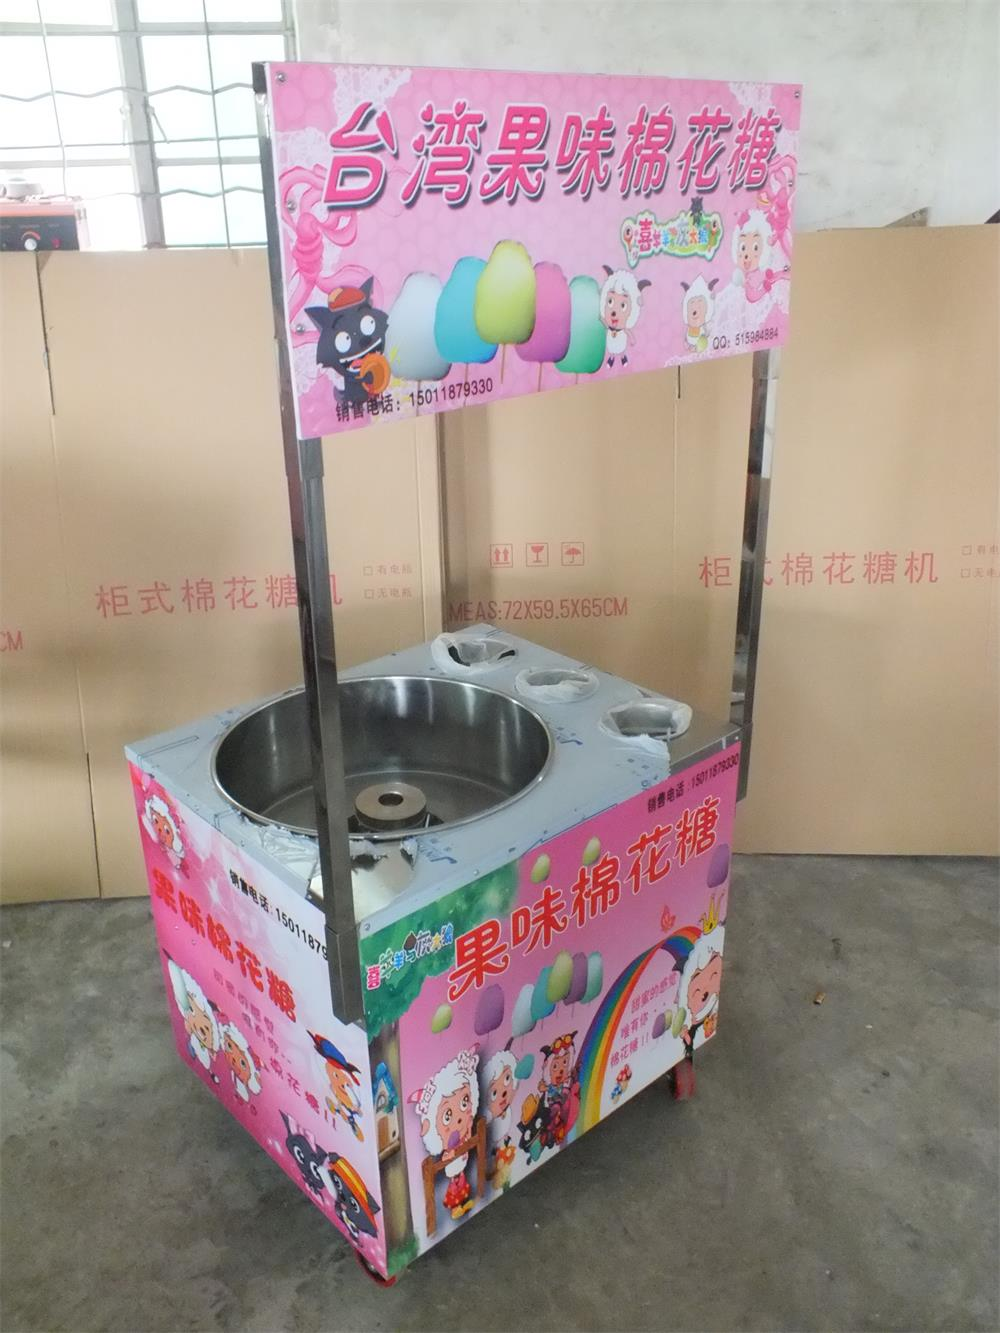 Commercial gas cotton Candy Machine /Candy Floss Machine/ Flower Cotton Candy Machine with mobile cartCommercial gas cotton Candy Machine /Candy Floss Machine/ Flower Cotton Candy Machine with mobile cart